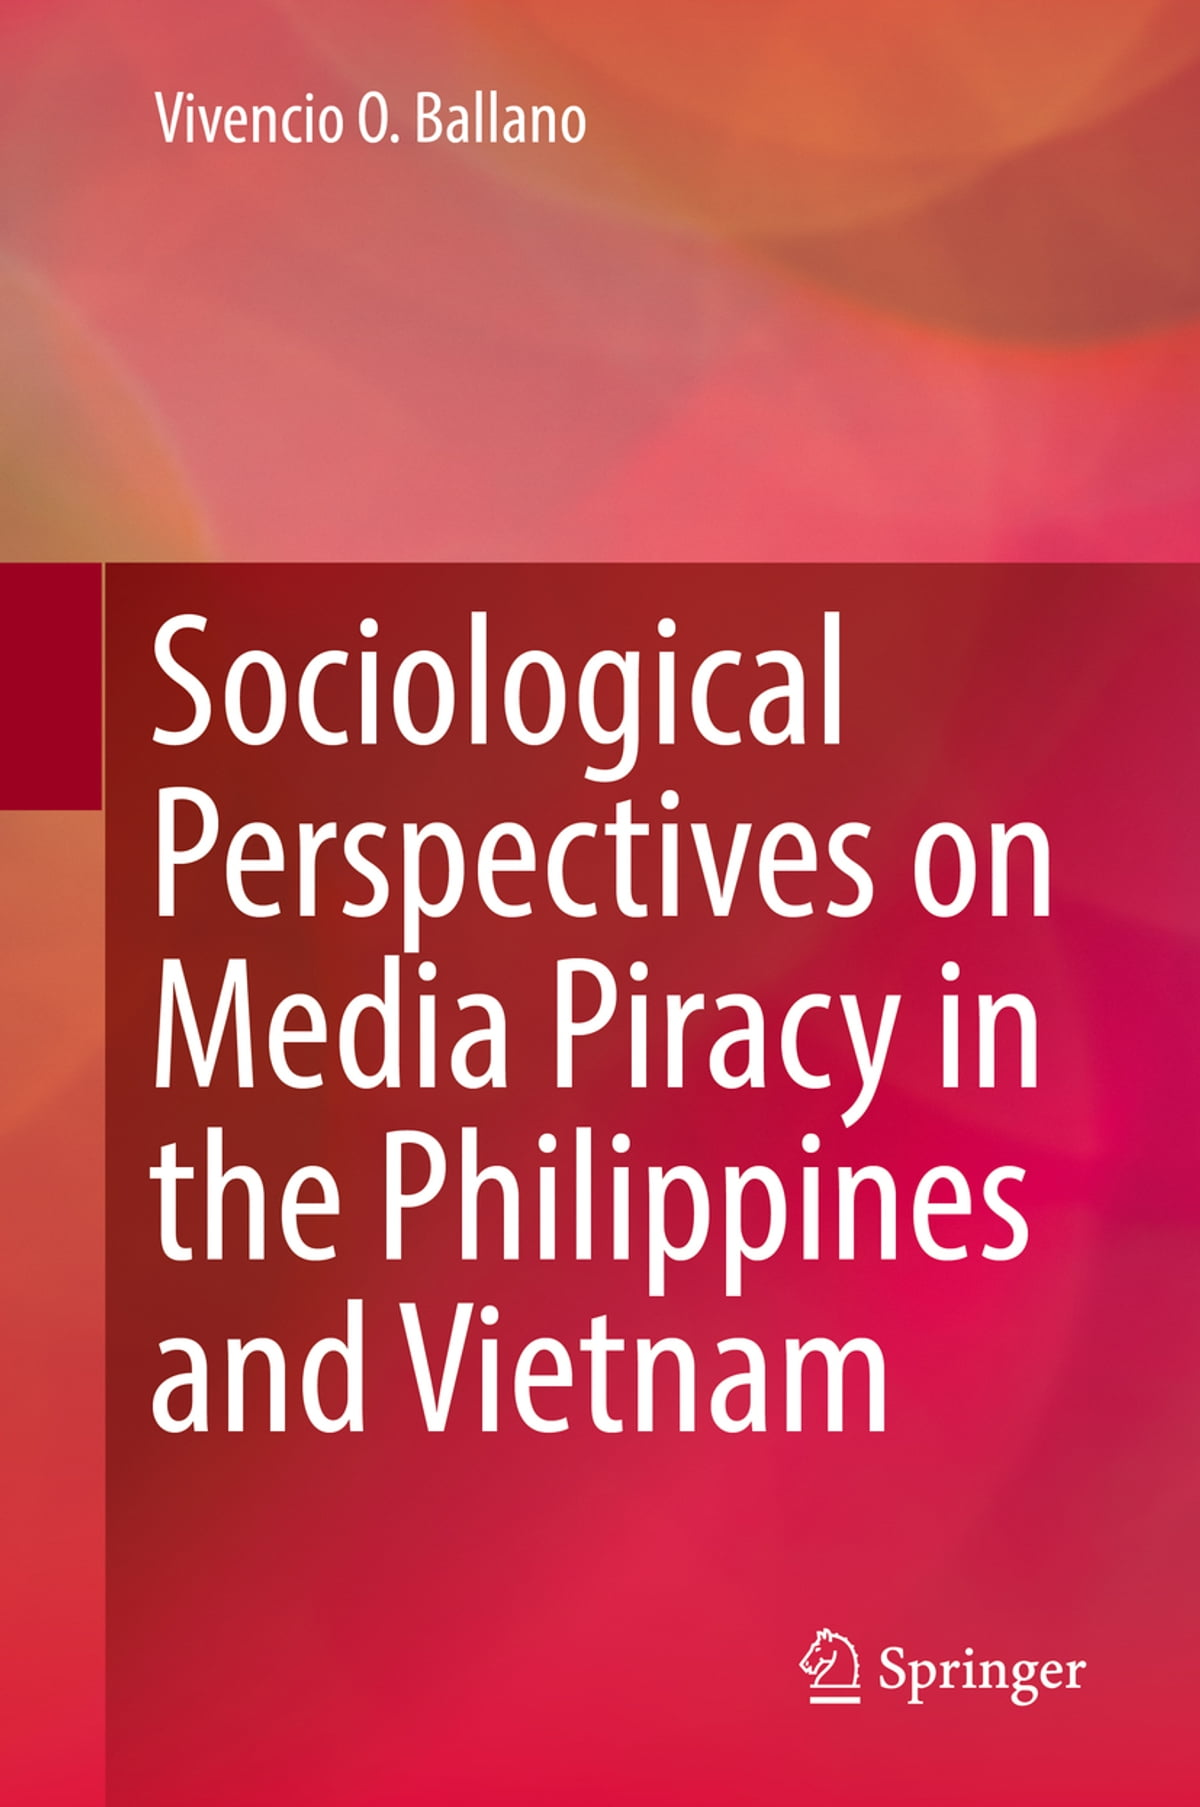 sociological perspectives movie nell Free sociological perspective papers, essays, and research papers.